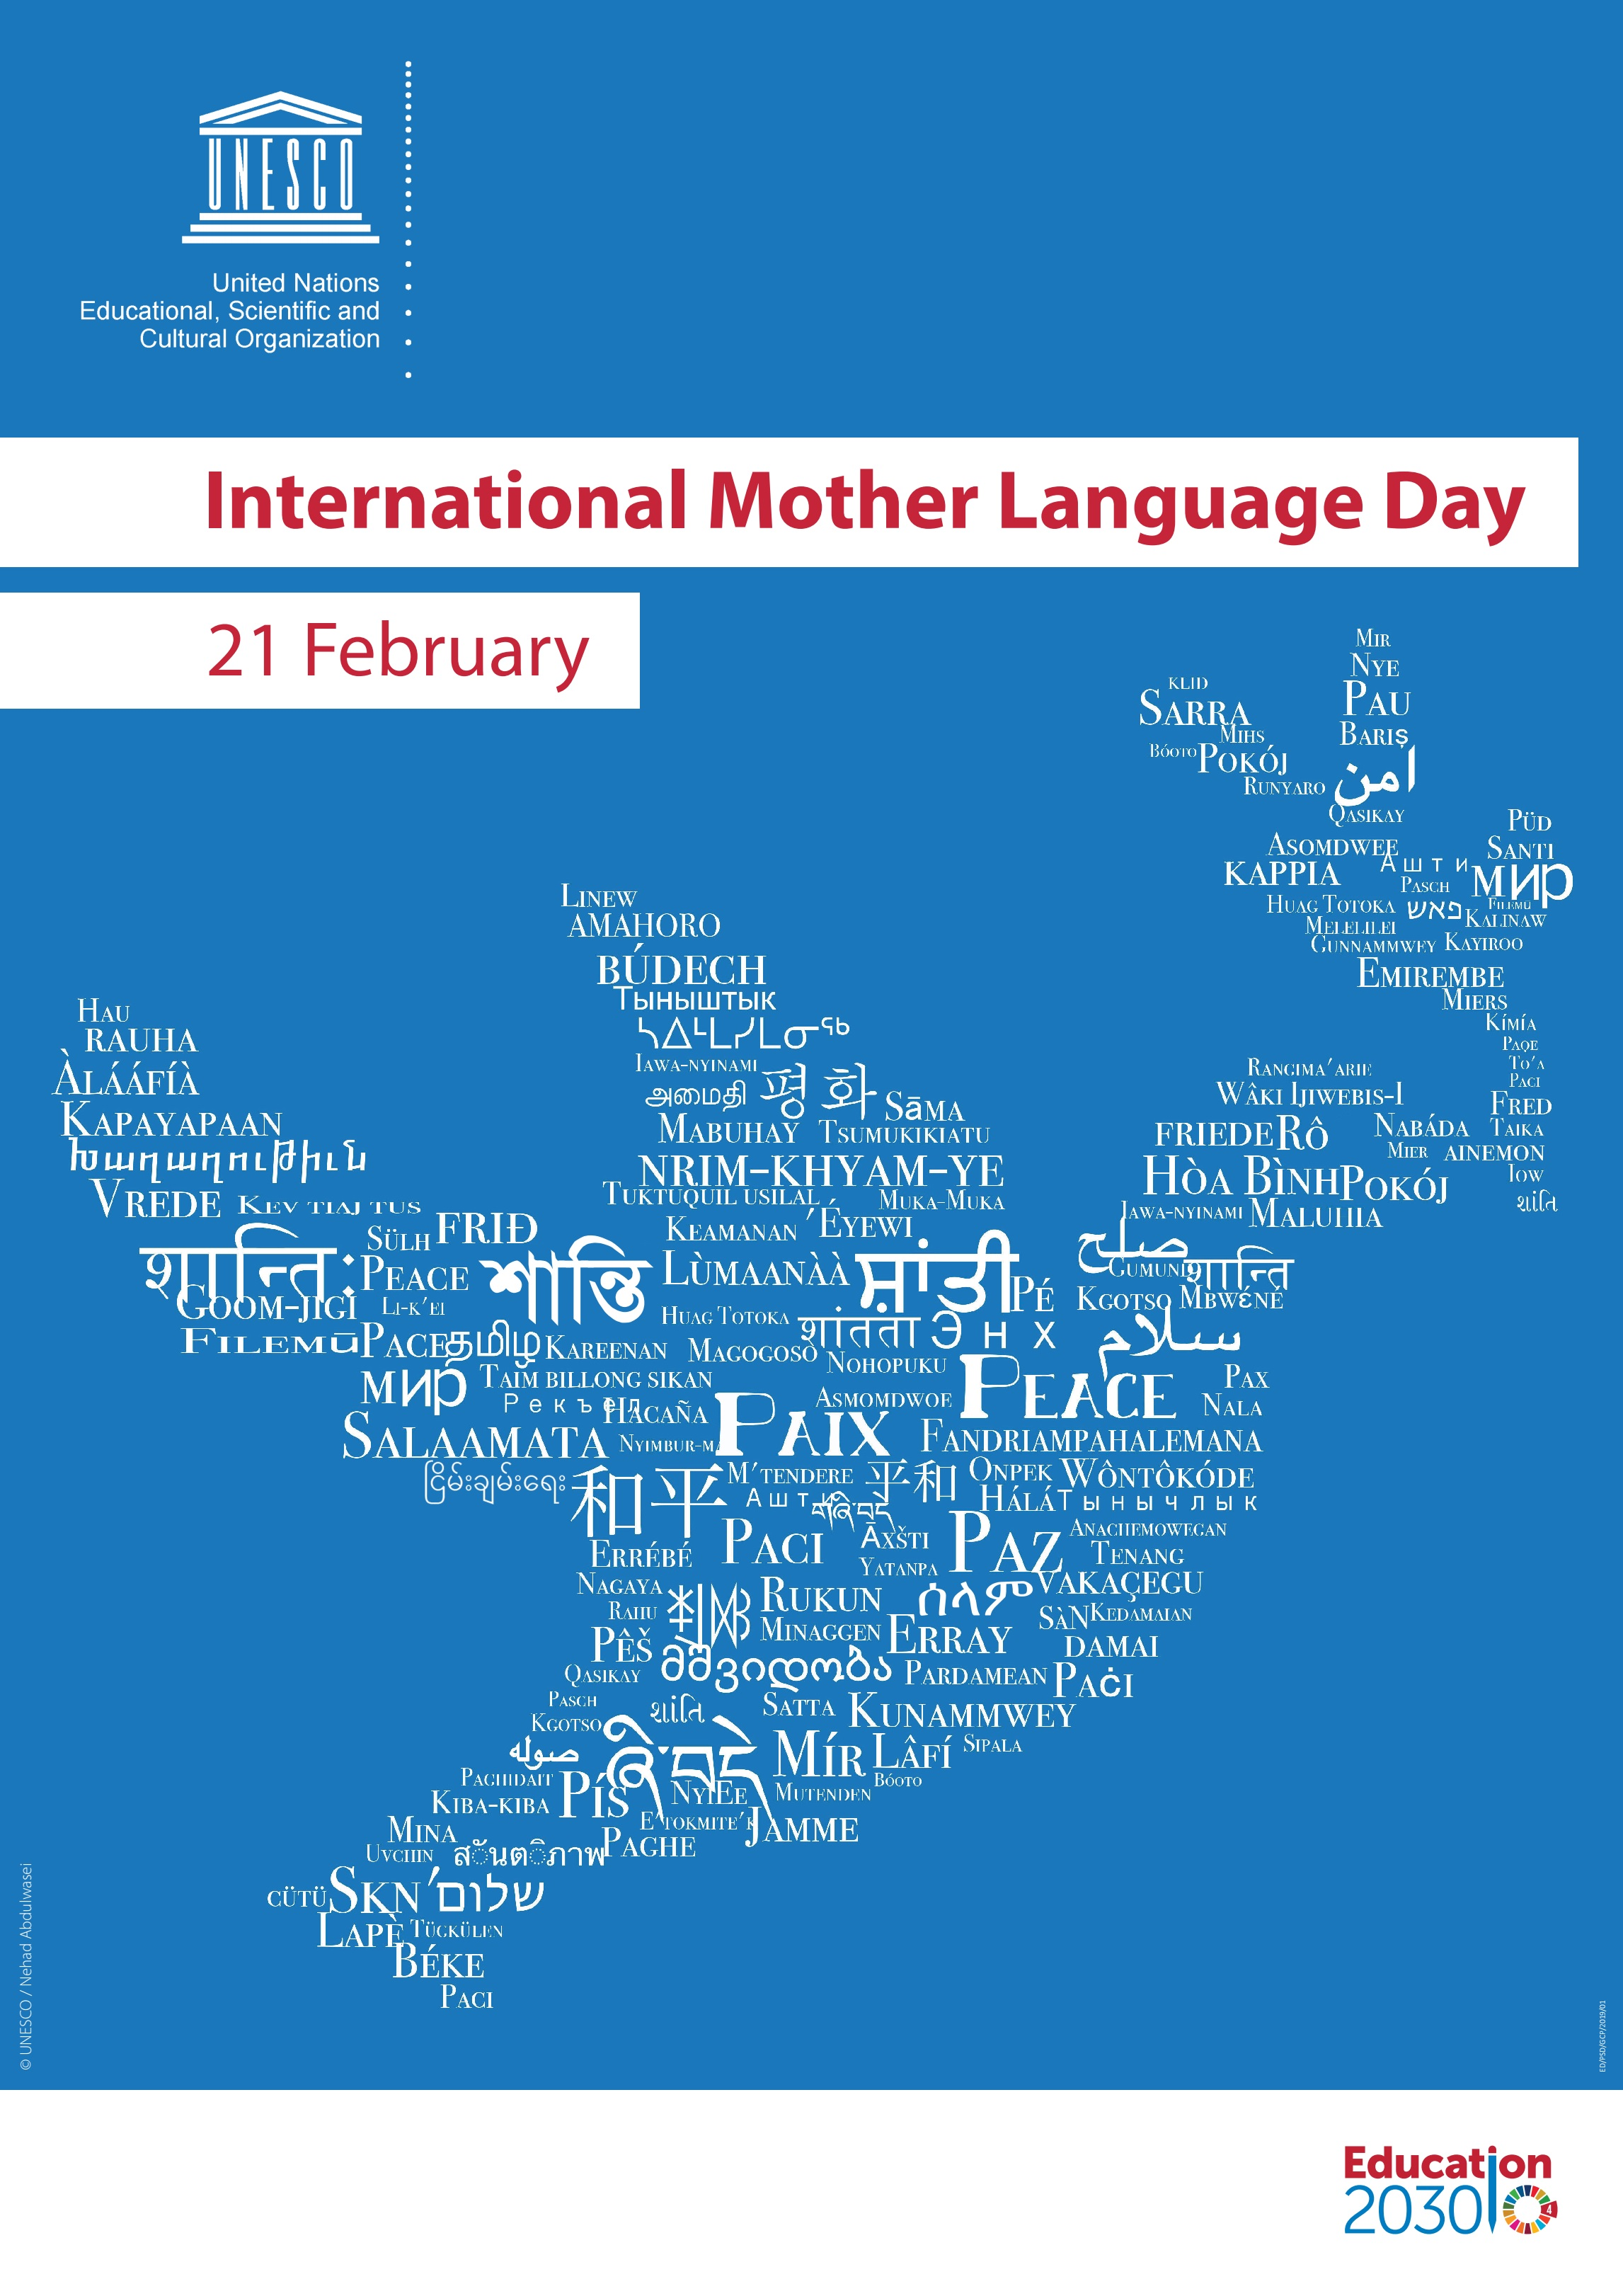 UNESCO Poster for International Mother Language Day 2019